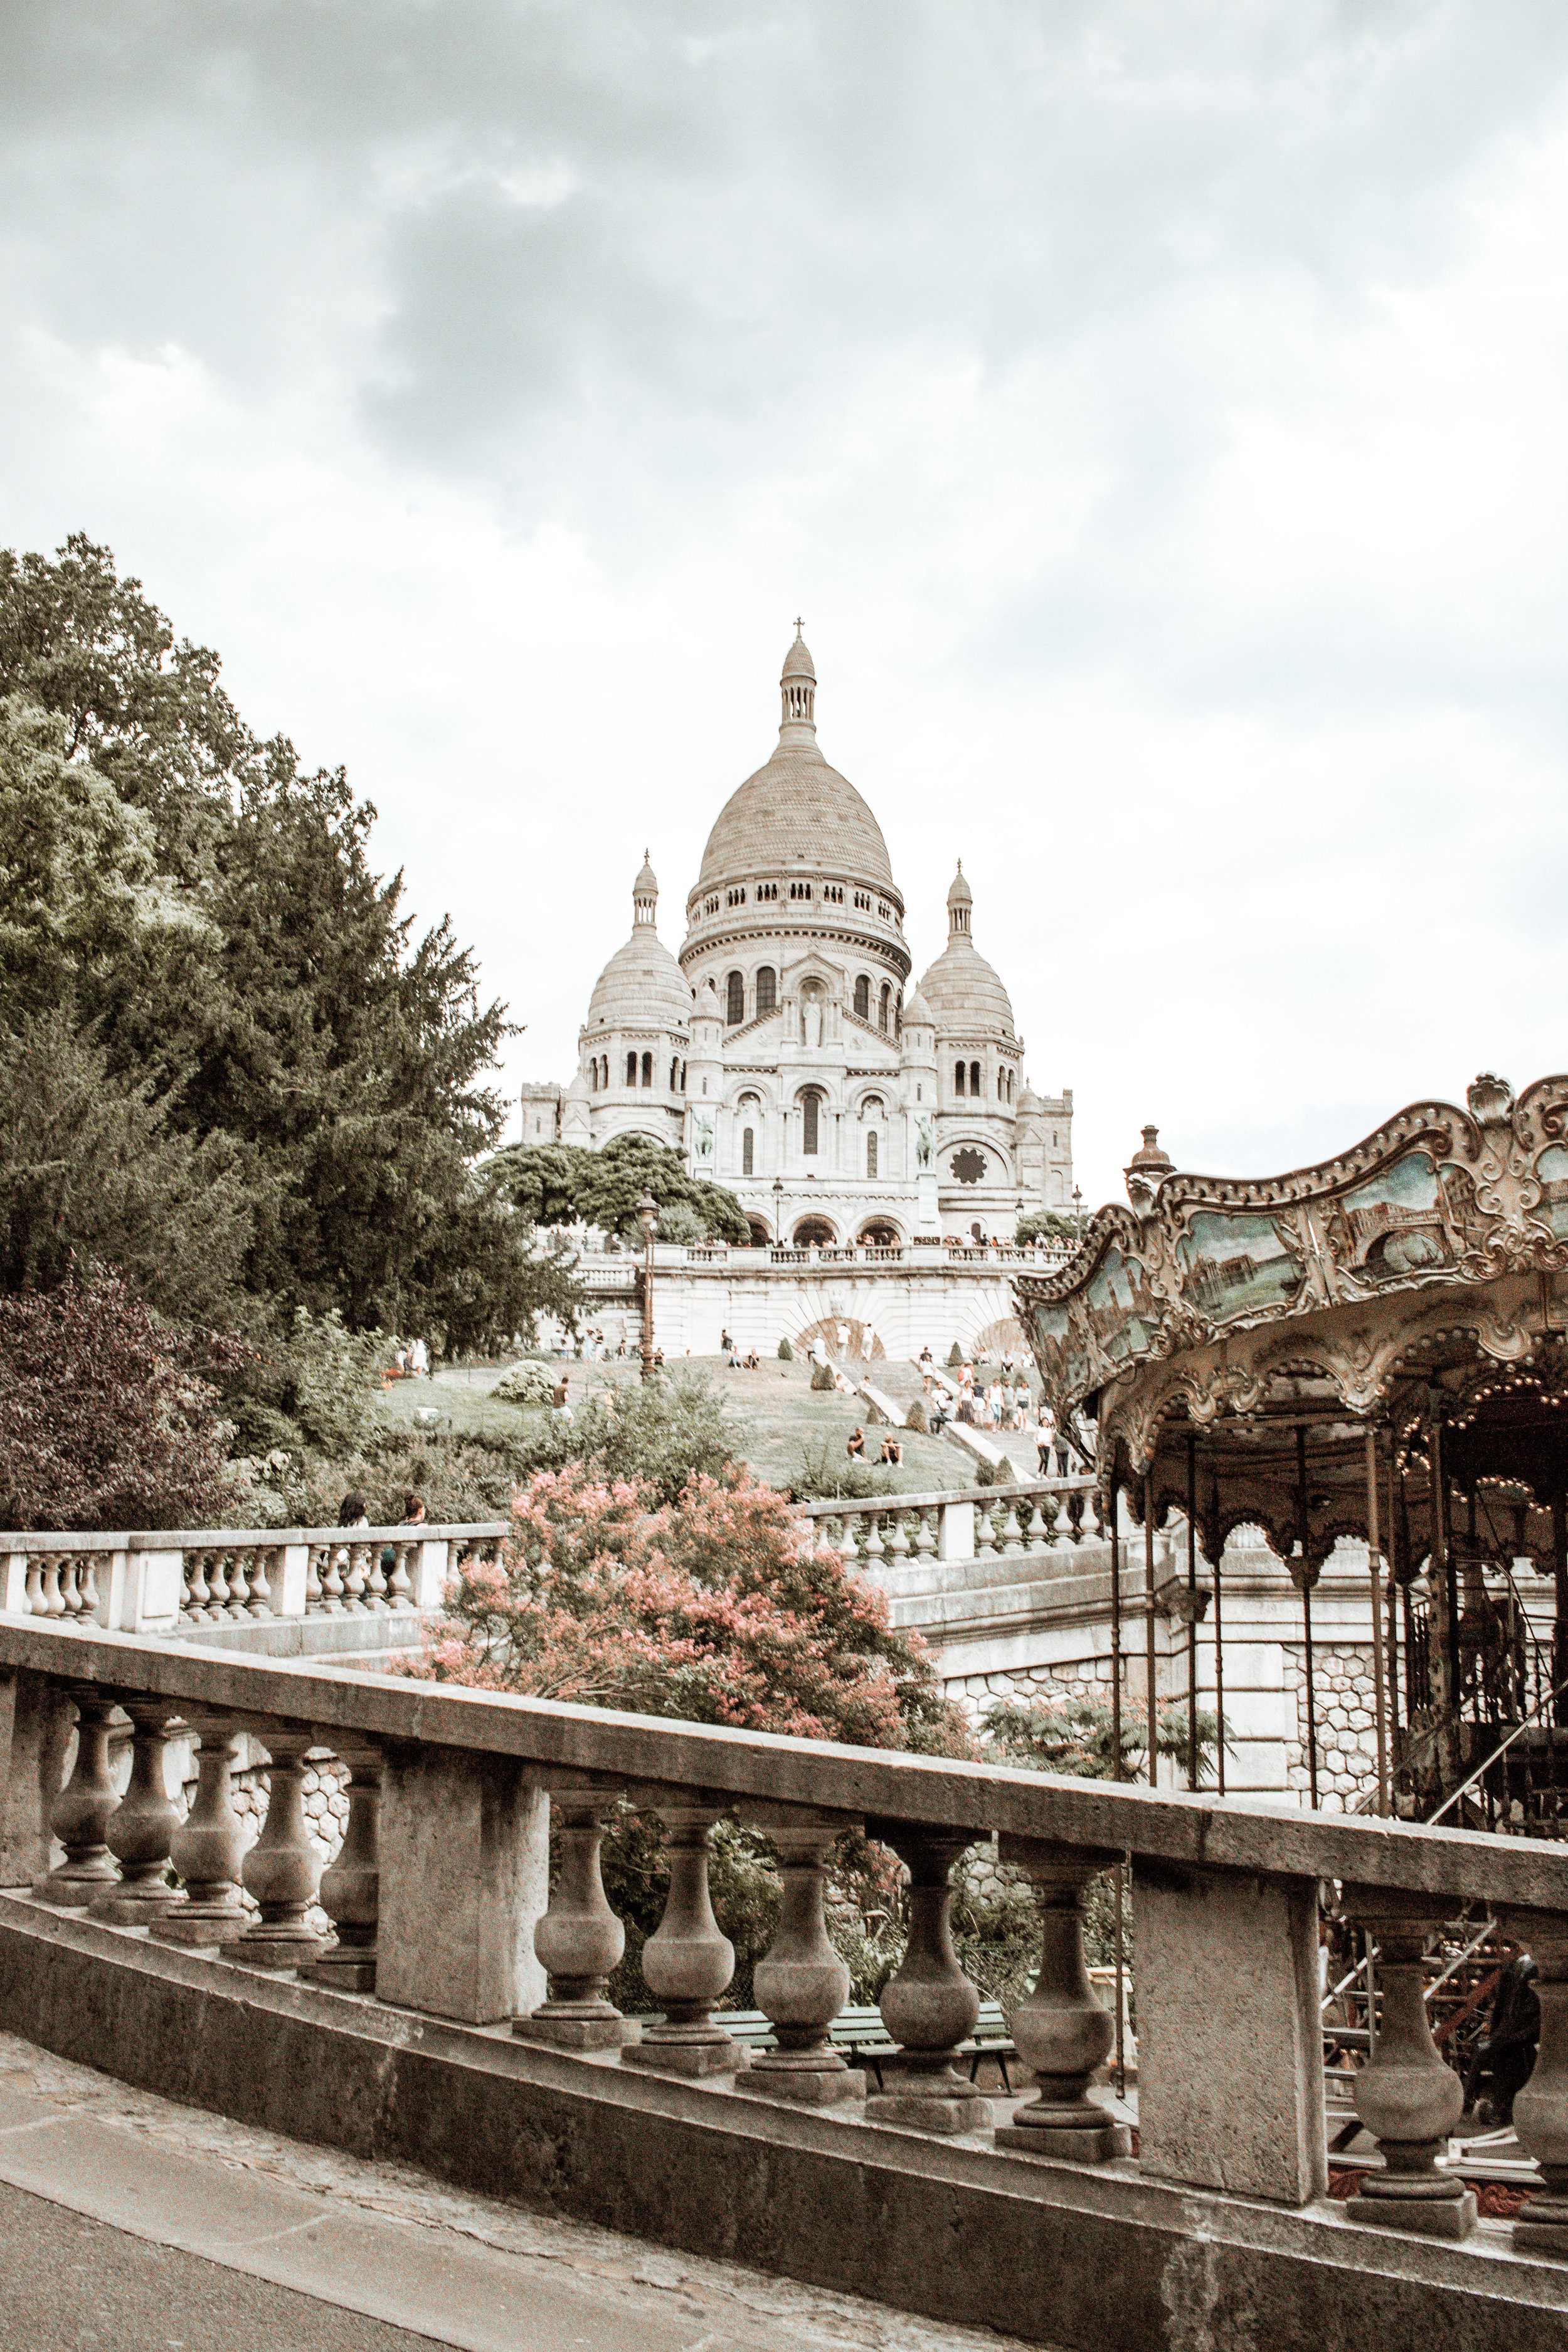 Paris-Europe-Trip-Best-Itinerary-58.jpg